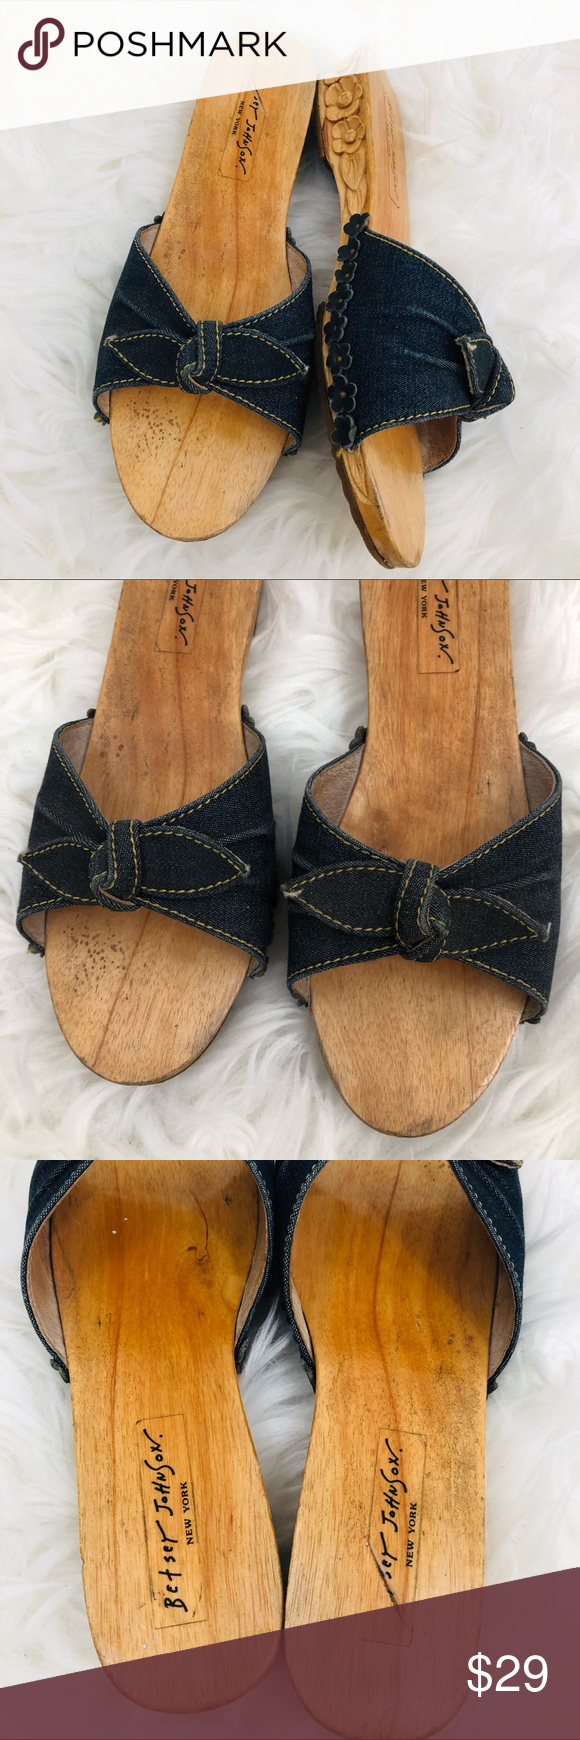 Betsey Johnson Denim Bow Flowers Wood Carved Flats Beautiful, authentic, and collectible 90s vintage...